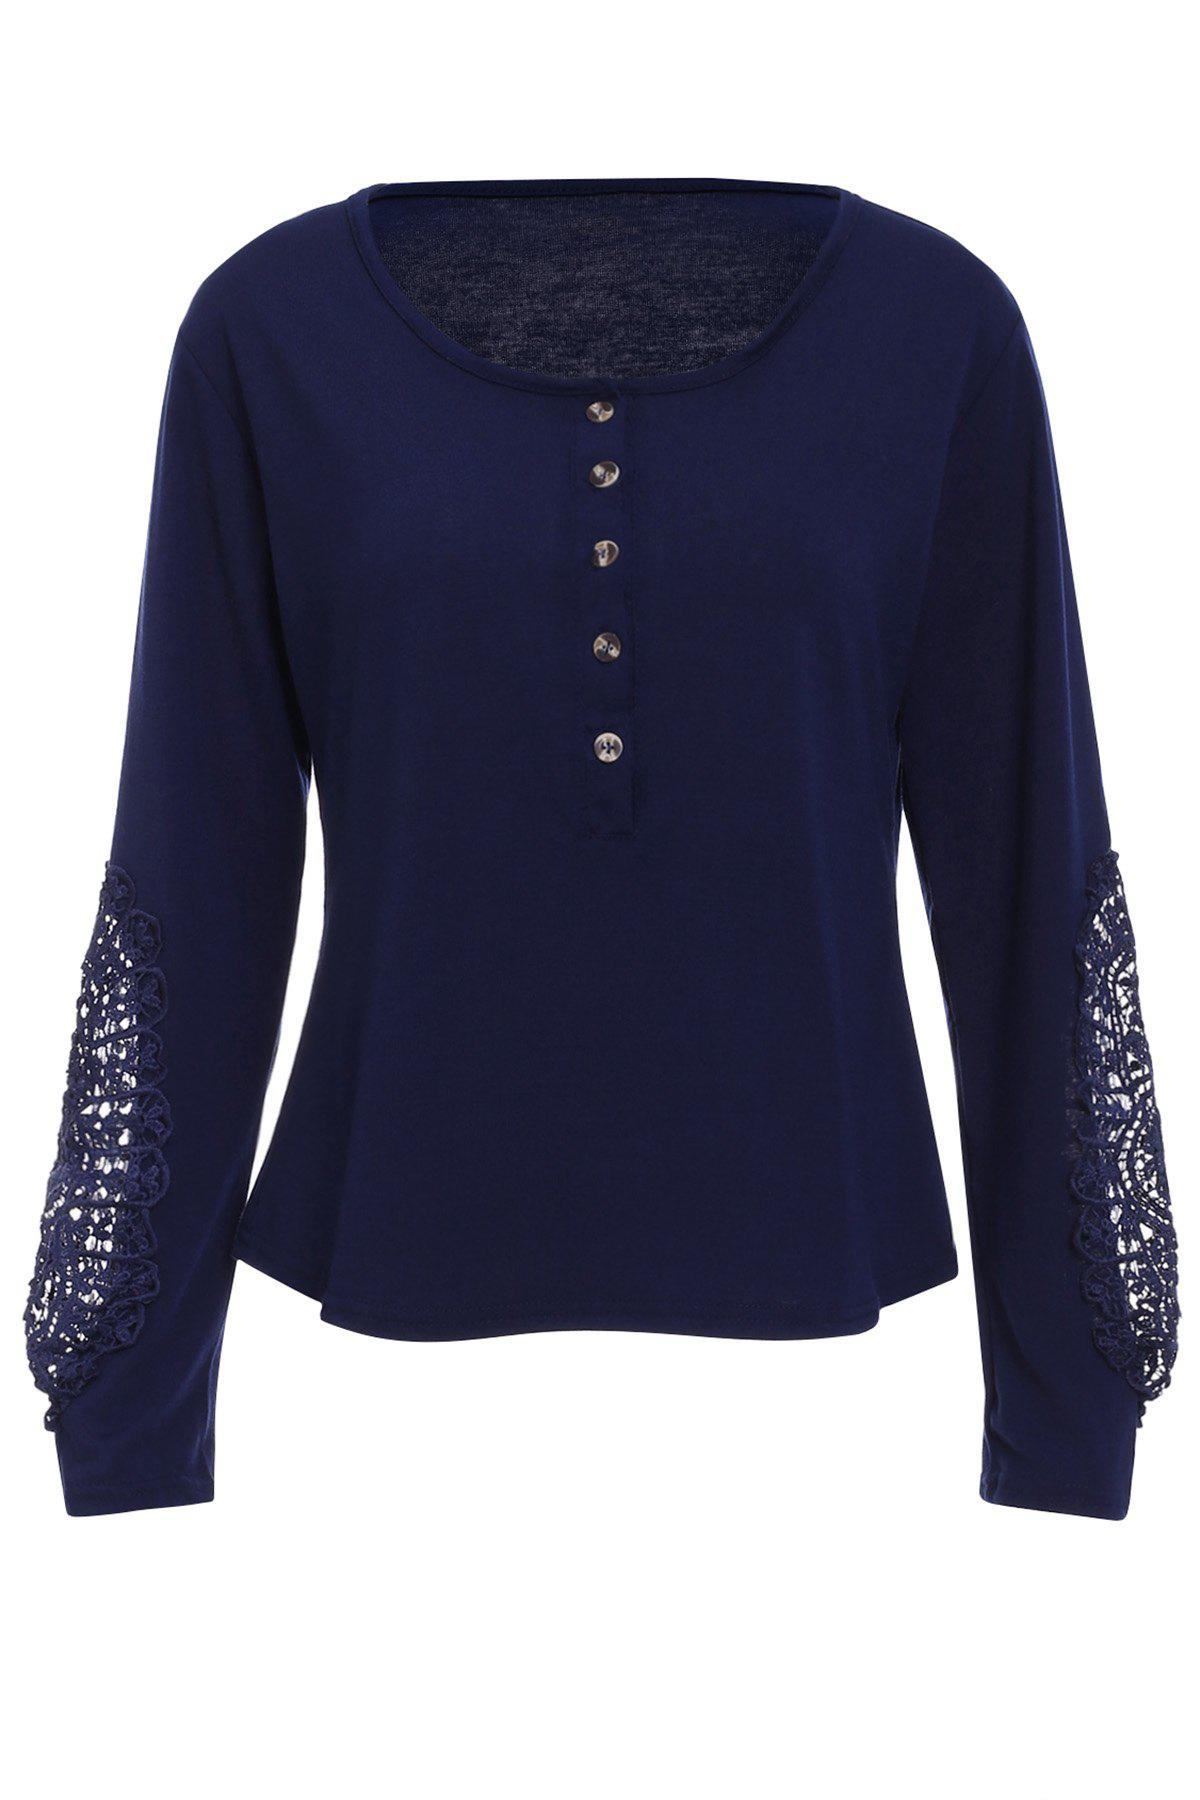 Casual Lace Splicing Scoop Neck Long Sleeve T-Shirt For Women - DEEP BLUE S